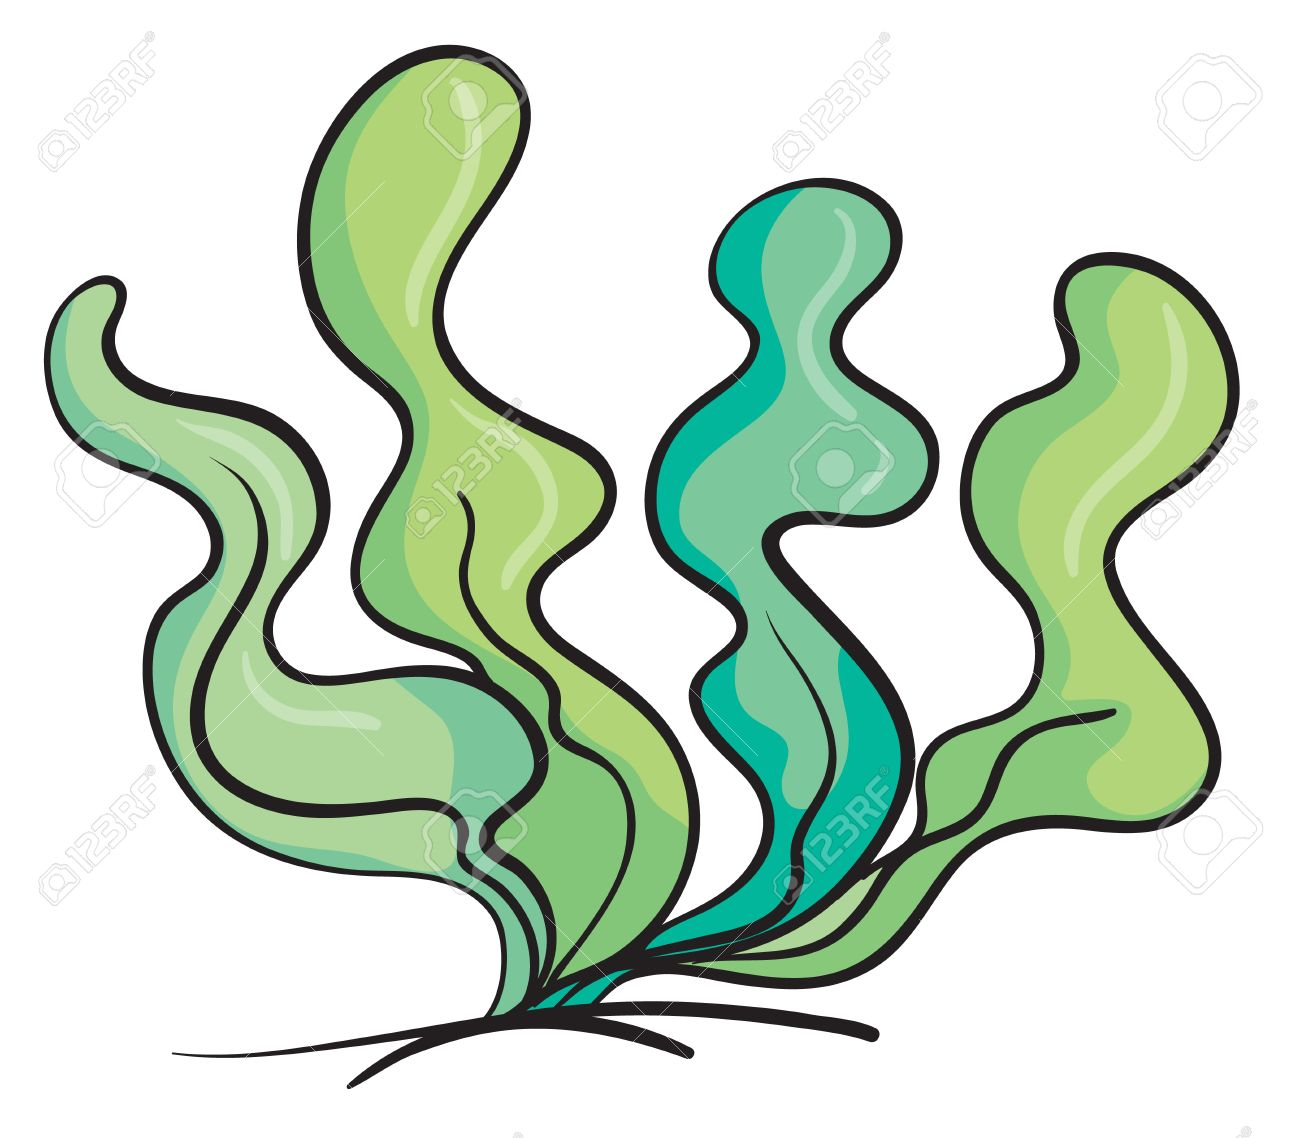 Sea Grass clipart #13, Download drawings